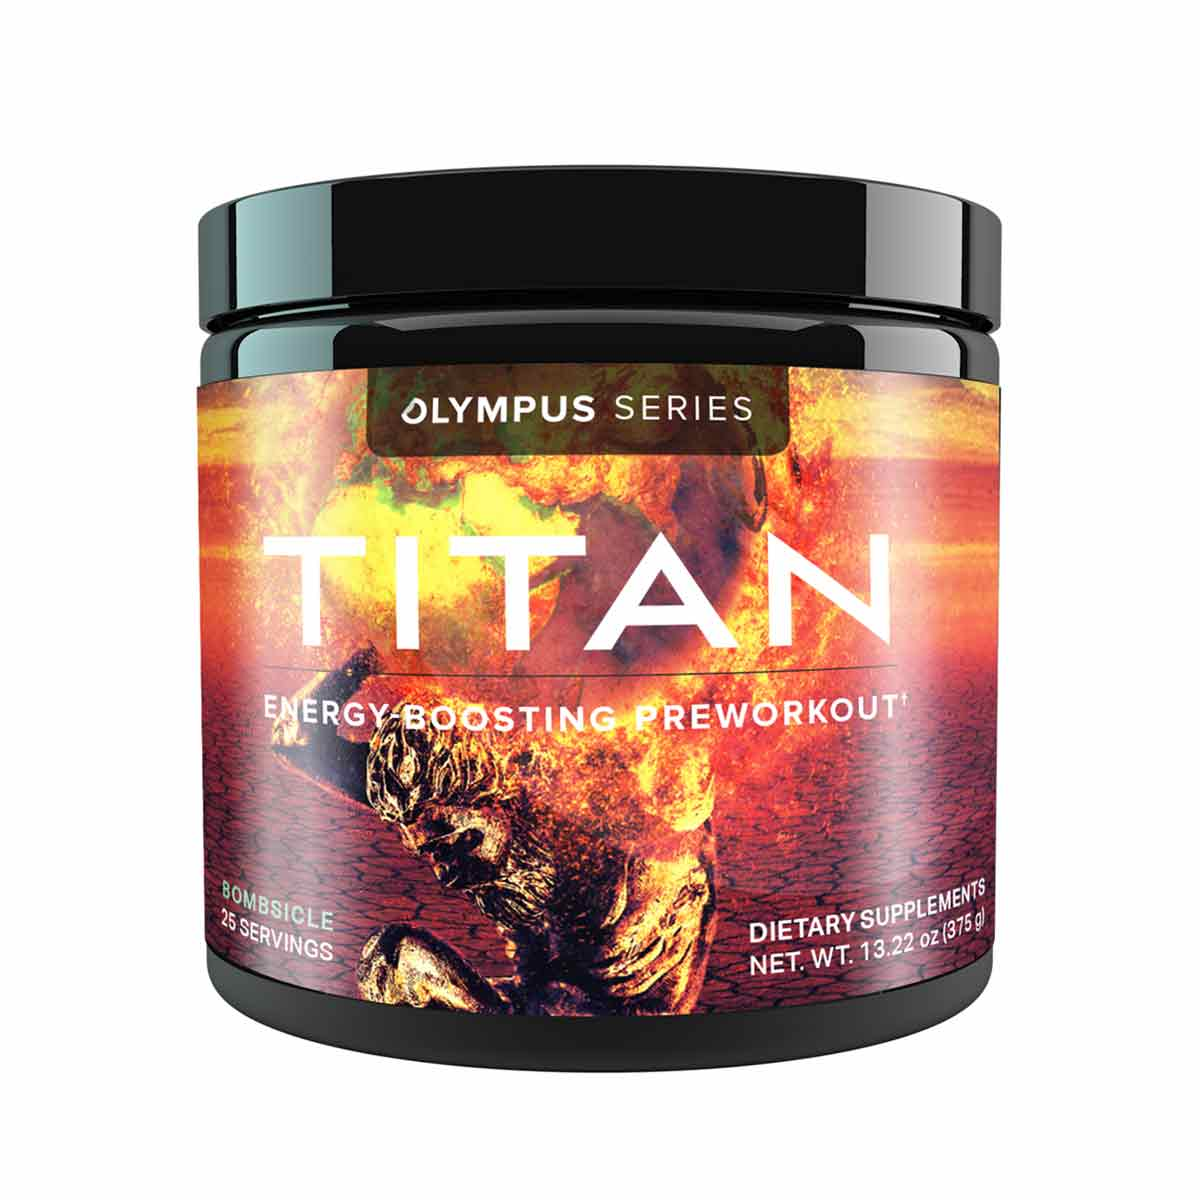 Chaos and Pain Titan Energy Boosting Workout